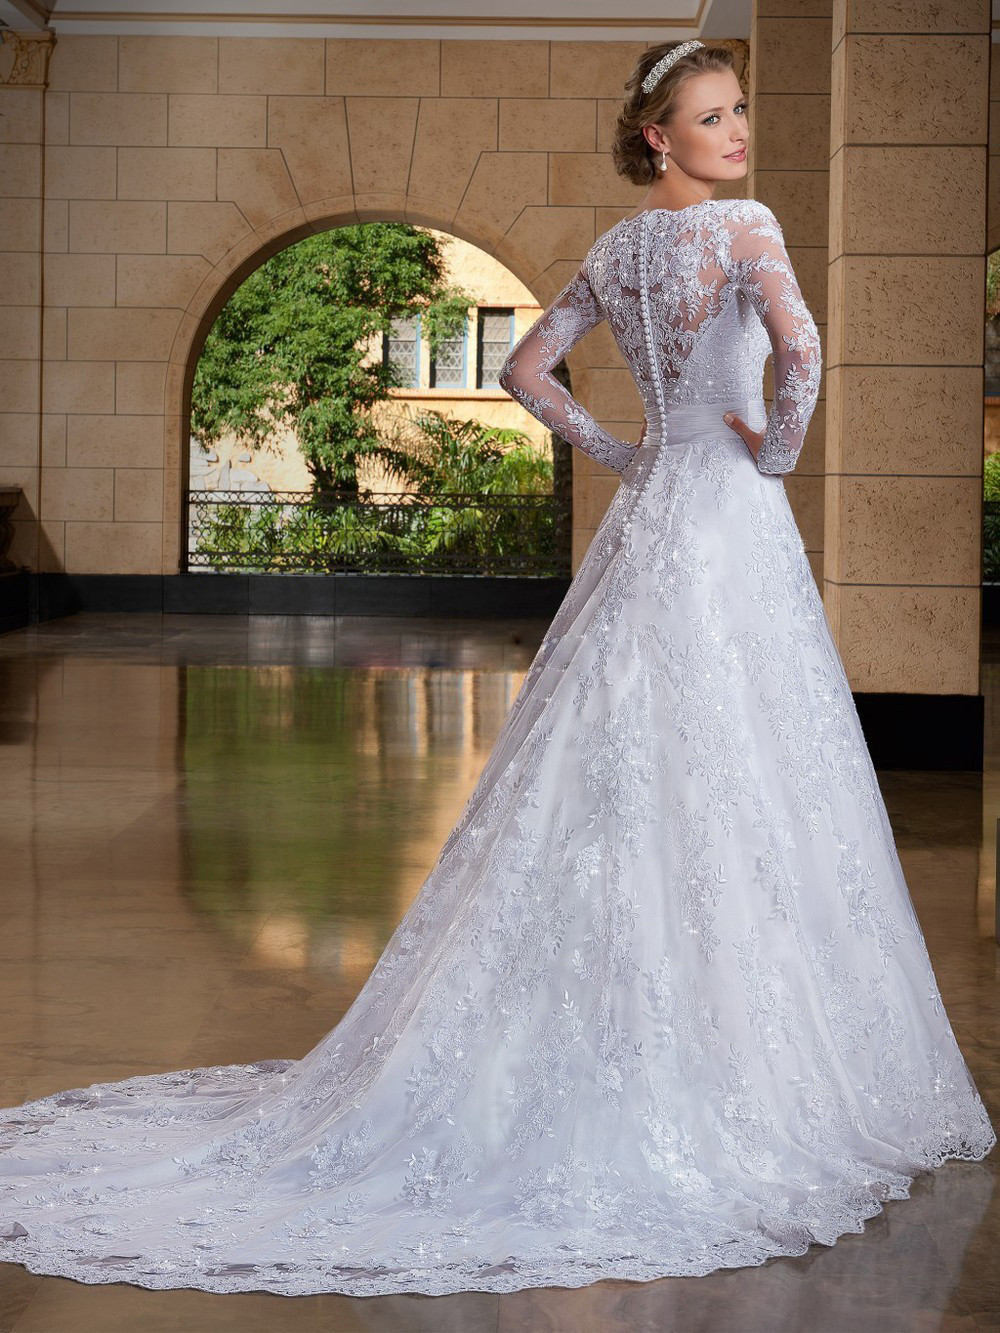 Vestido Limited New De Noiva Ever Pretty Sexy V Neck Long Sleeve Lace Hijab Wedding Dresses Plus Size 2016 Robe Mariage A007 In From